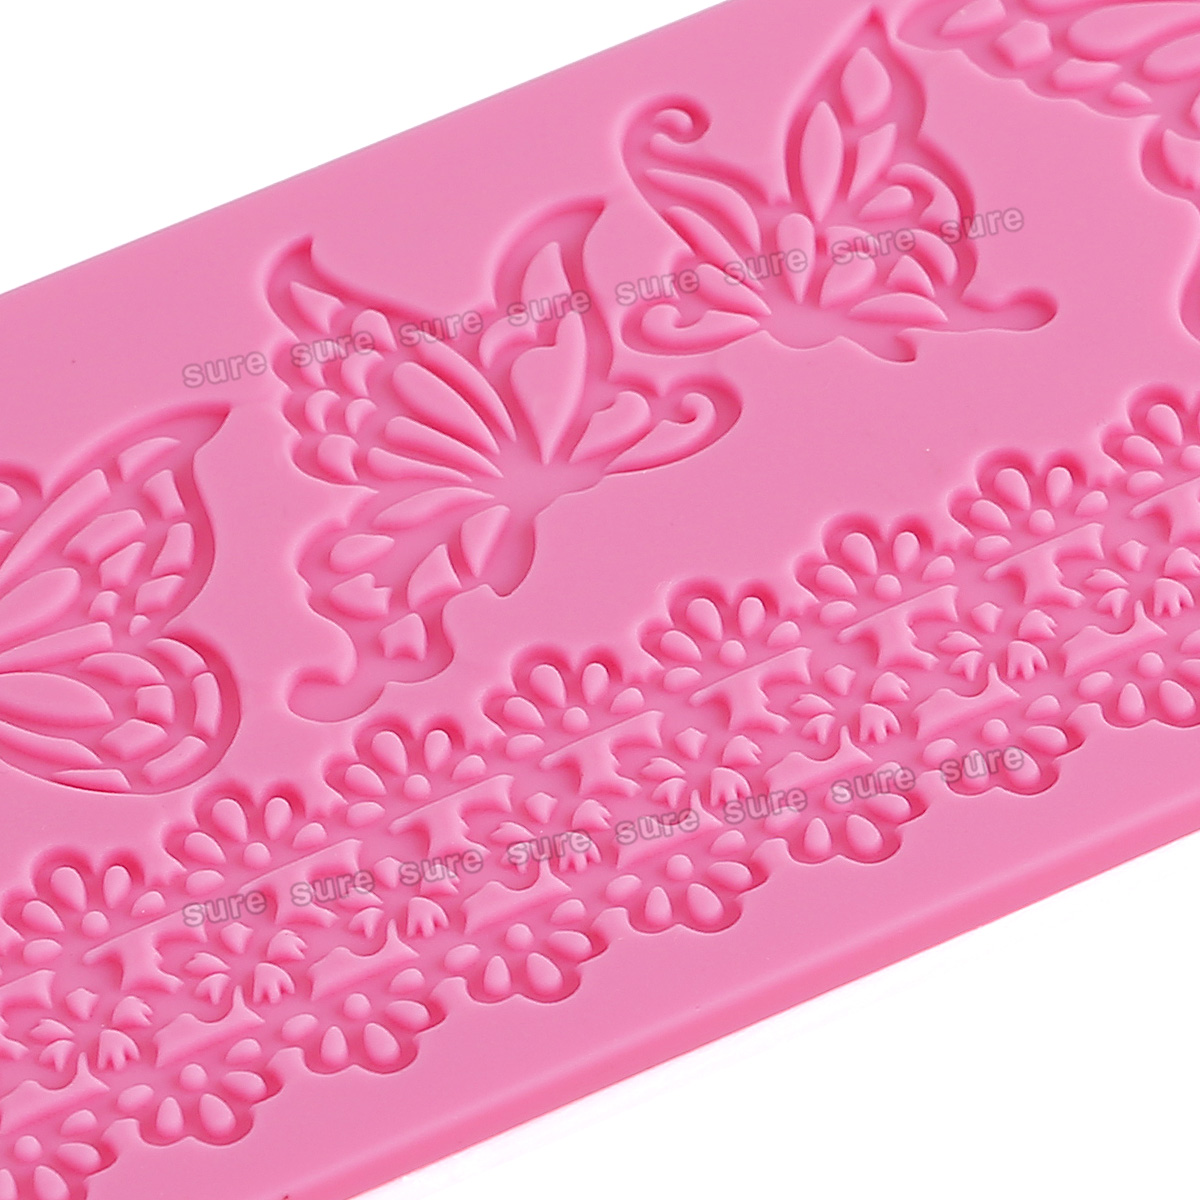 Cake Decorating Lace Molds Uk : Silicone Lace Icing Cake Mold Mould Baking Tool For ...